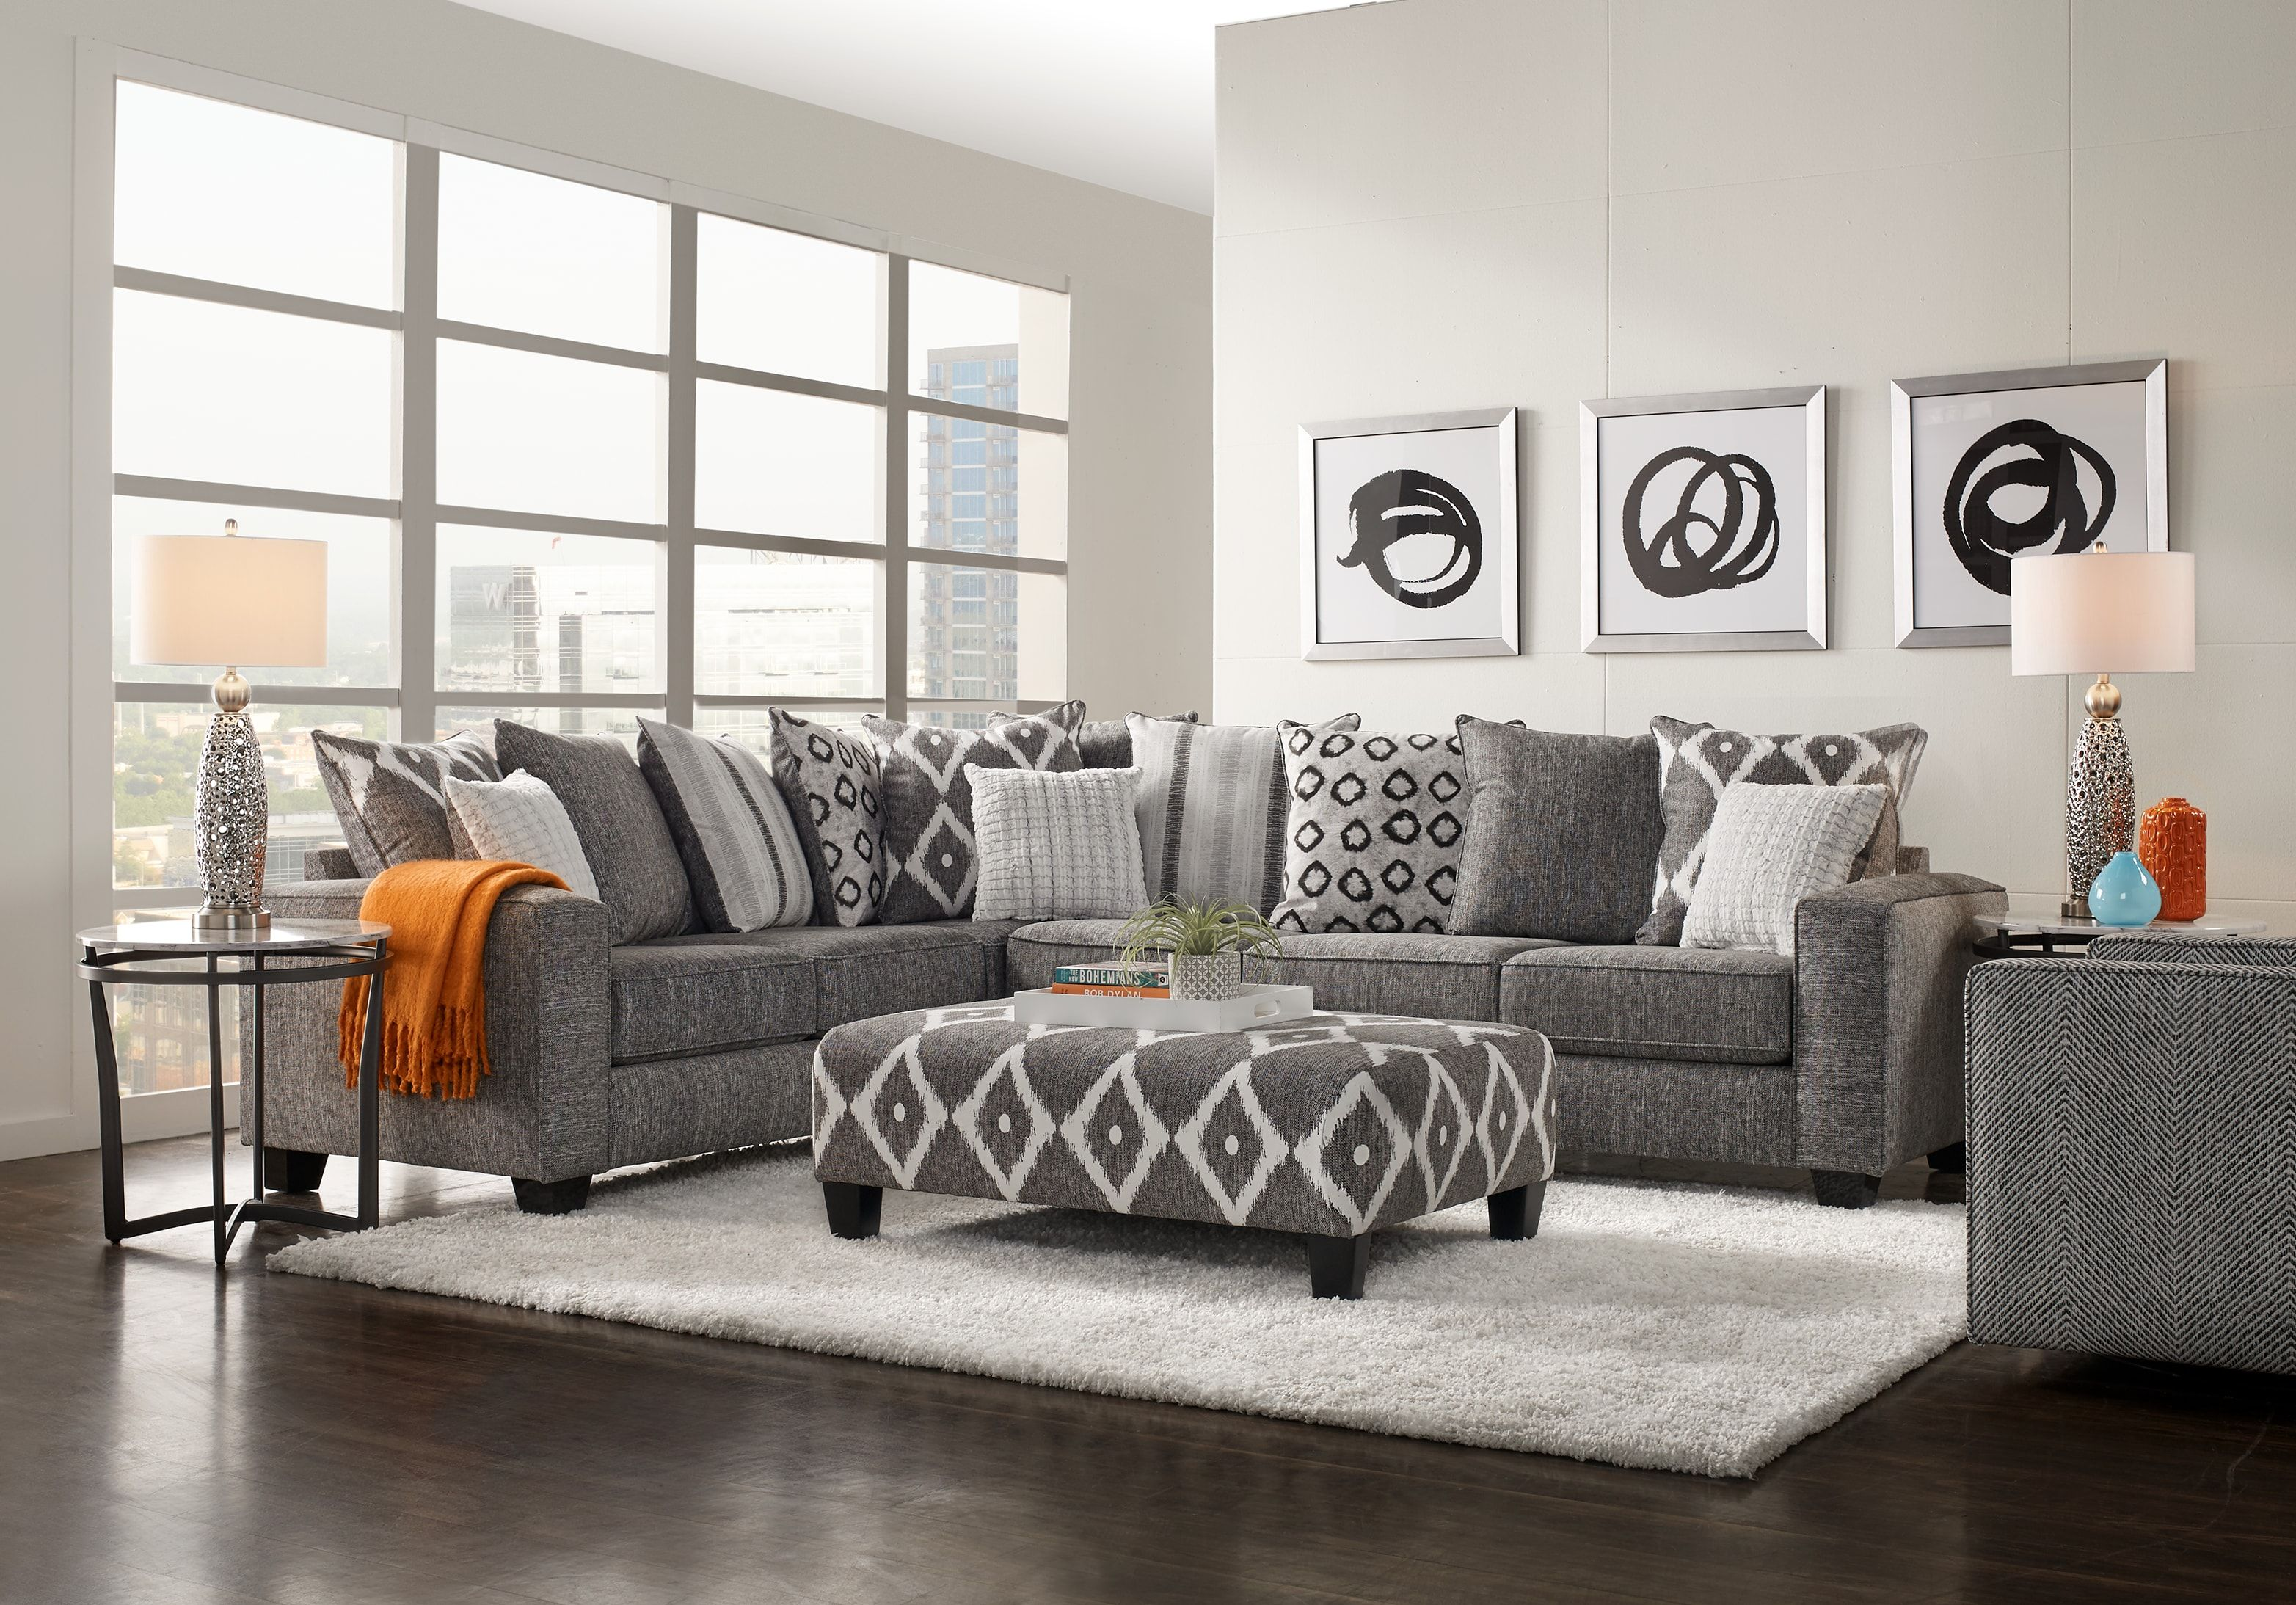 Carole Court Gray 3 Pc Sectional Living Room 1199 99 3pc Set Includes Cocktail Living Room Sets Furniture Sectional Living Room Sets Grey Couch Living Room